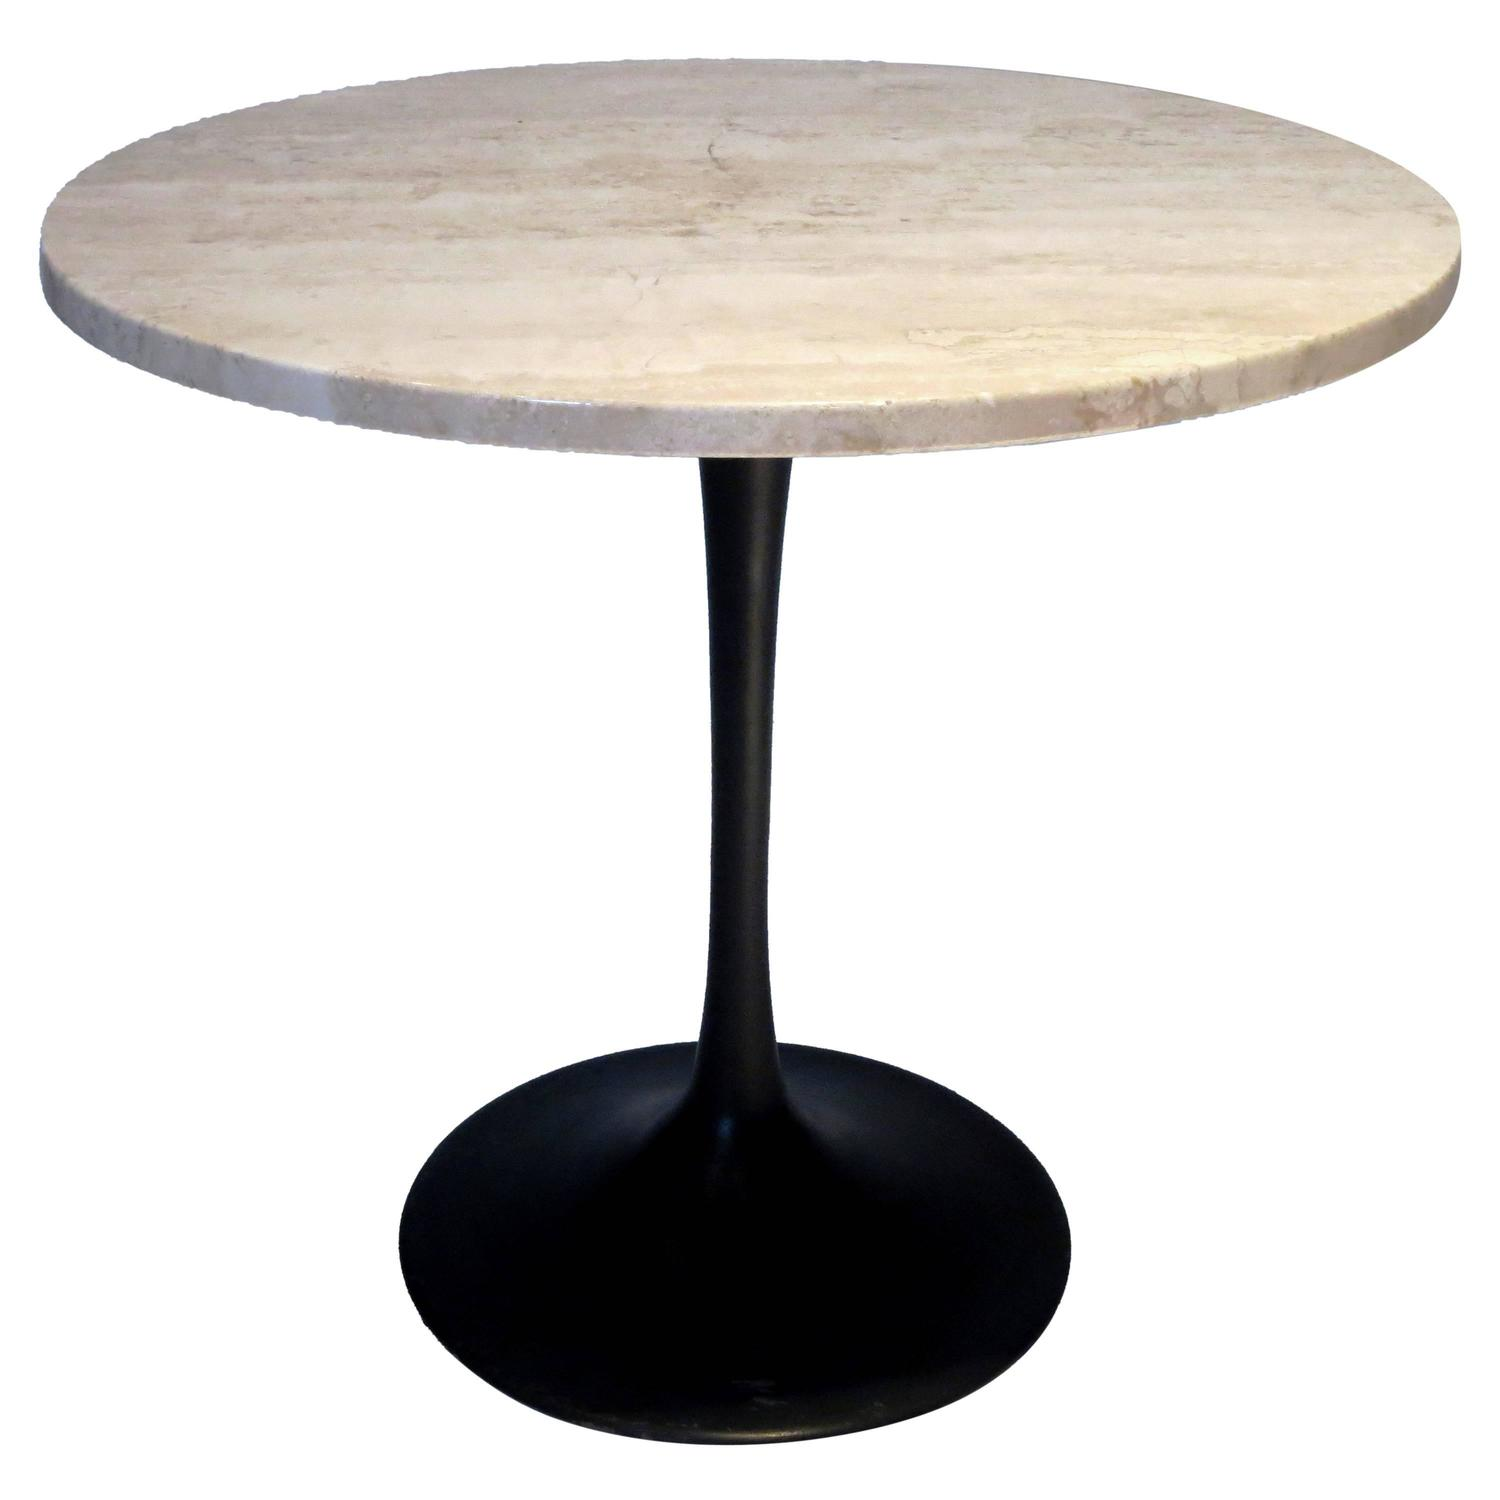 1970s Marble And Black Enameled Metal Base Oval Cocktail Table At 1stdibs